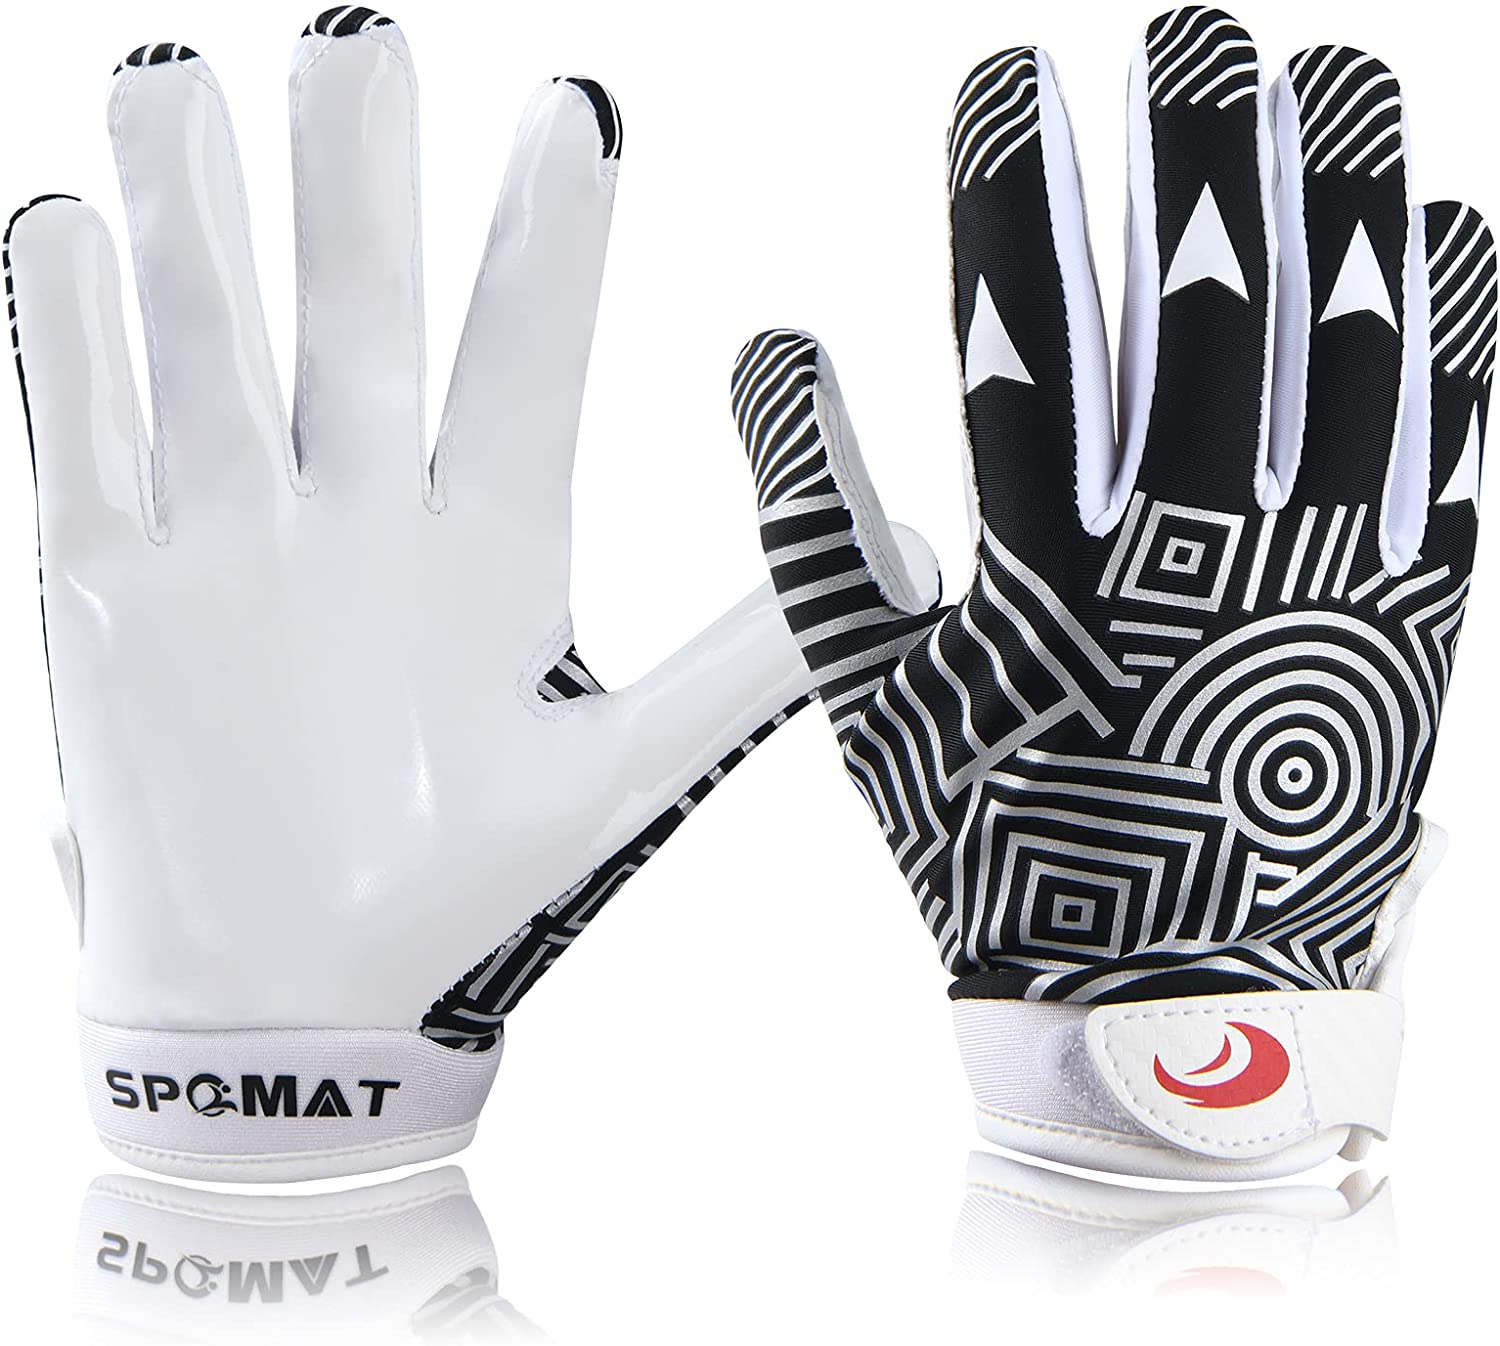 SPOMAT Youth Football Gloves Kids Silicone Grip Receiver Gloves for Kids with Super Stick Ability for Best Game Experience : Sports & Outdoors